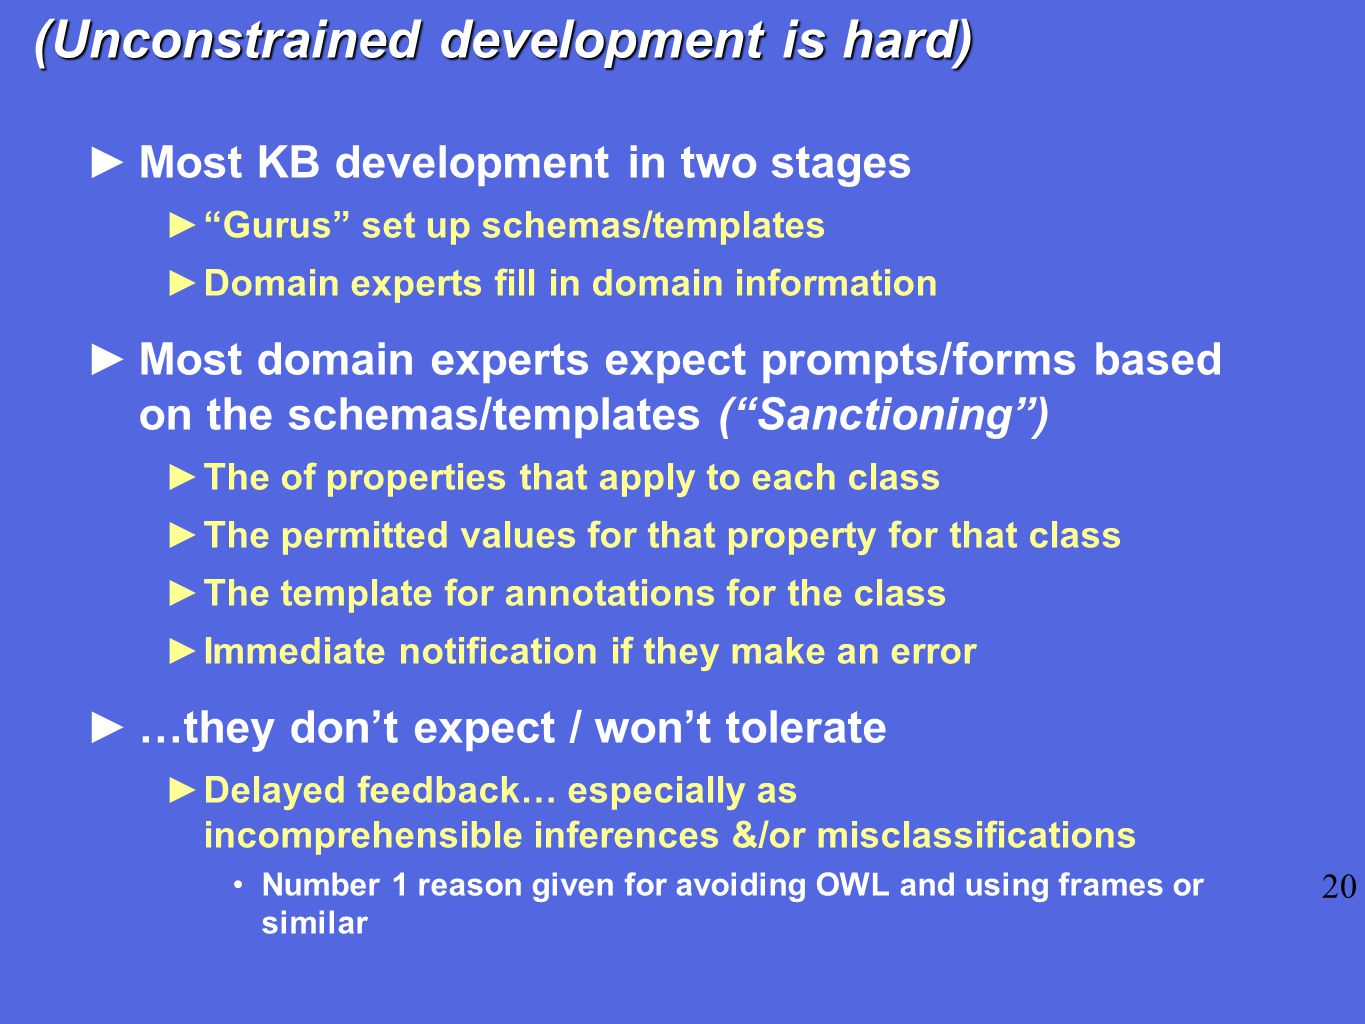 (Unconstrained development is hard) ►Most KB development in two stages ► Gurus set up schemas/templates ►Domain experts fill in domain information ►Most domain experts expect prompts/forms based on the schemas/templates ( Sanctioning ) ►The of properties that apply to each class ►The permitted values for that property for that class ►The template for annotations for the class ►Immediate notification if they make an error ►…they don't expect / won't tolerate ►Delayed feedback… especially as incomprehensible inferences &/or misclassifications Number 1 reason given for avoiding OWL and using frames or similar 20